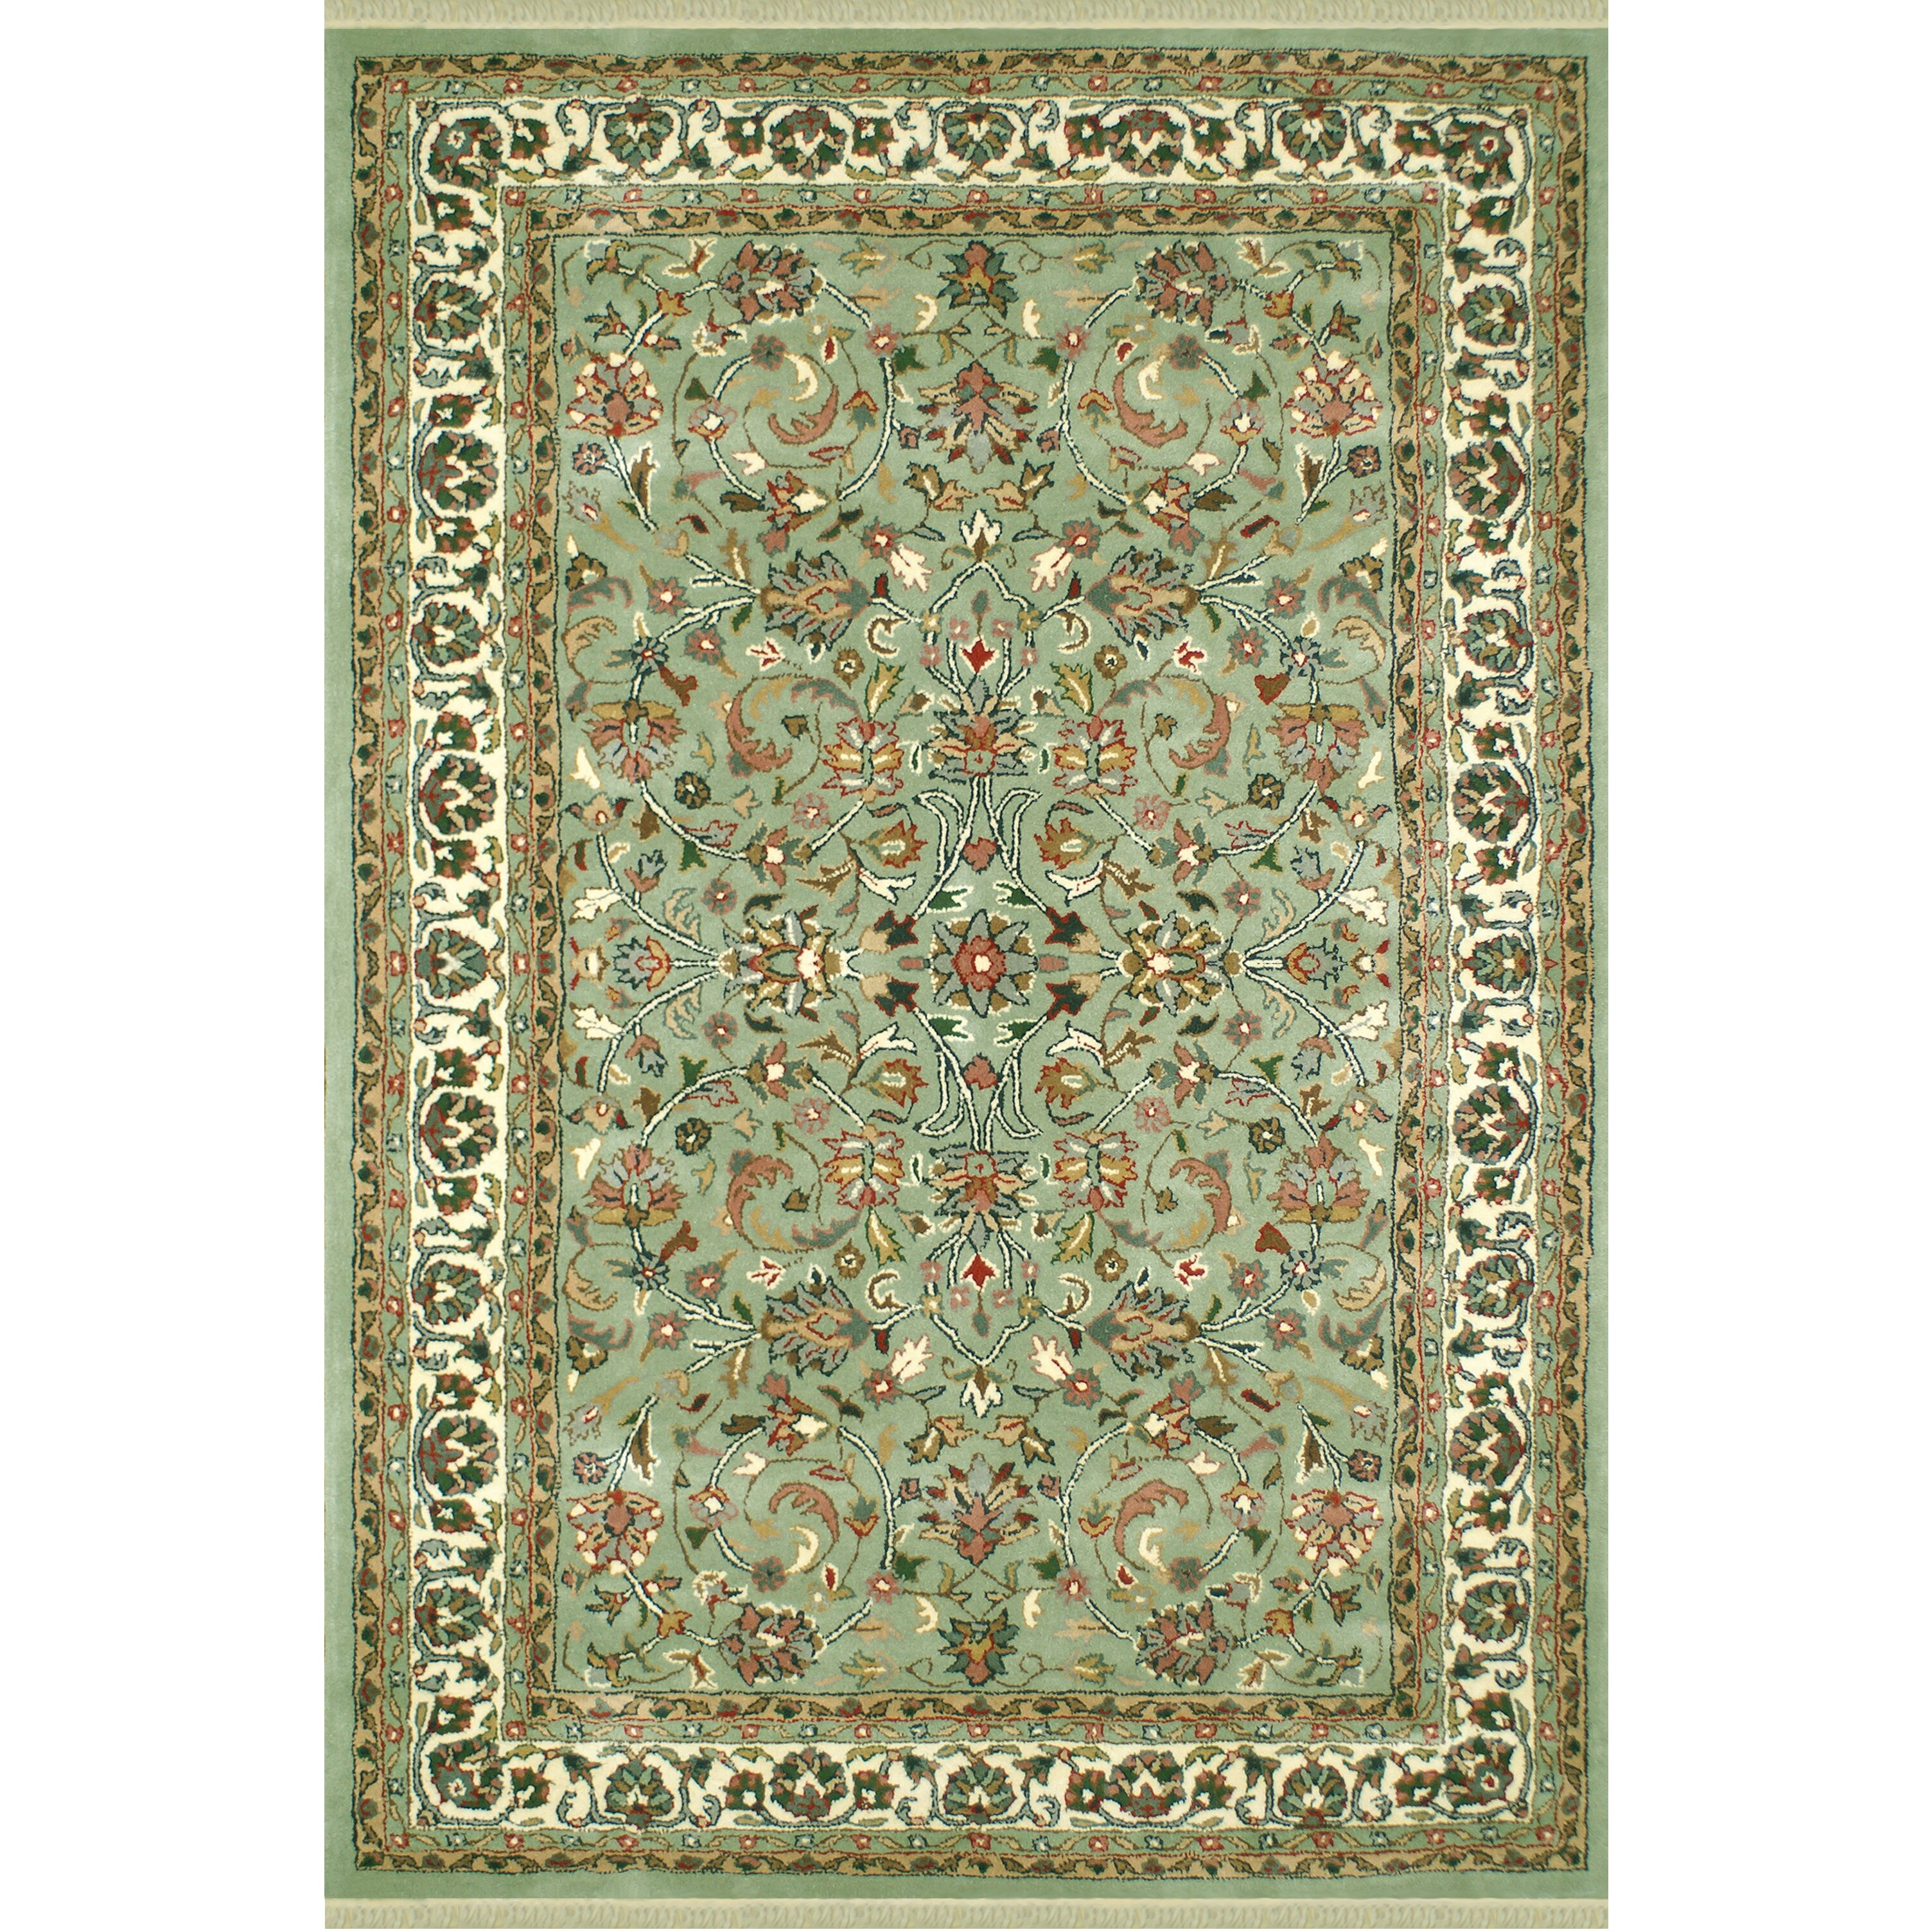 American home rug co american home classic kashan light for Dining room rugs 9x12